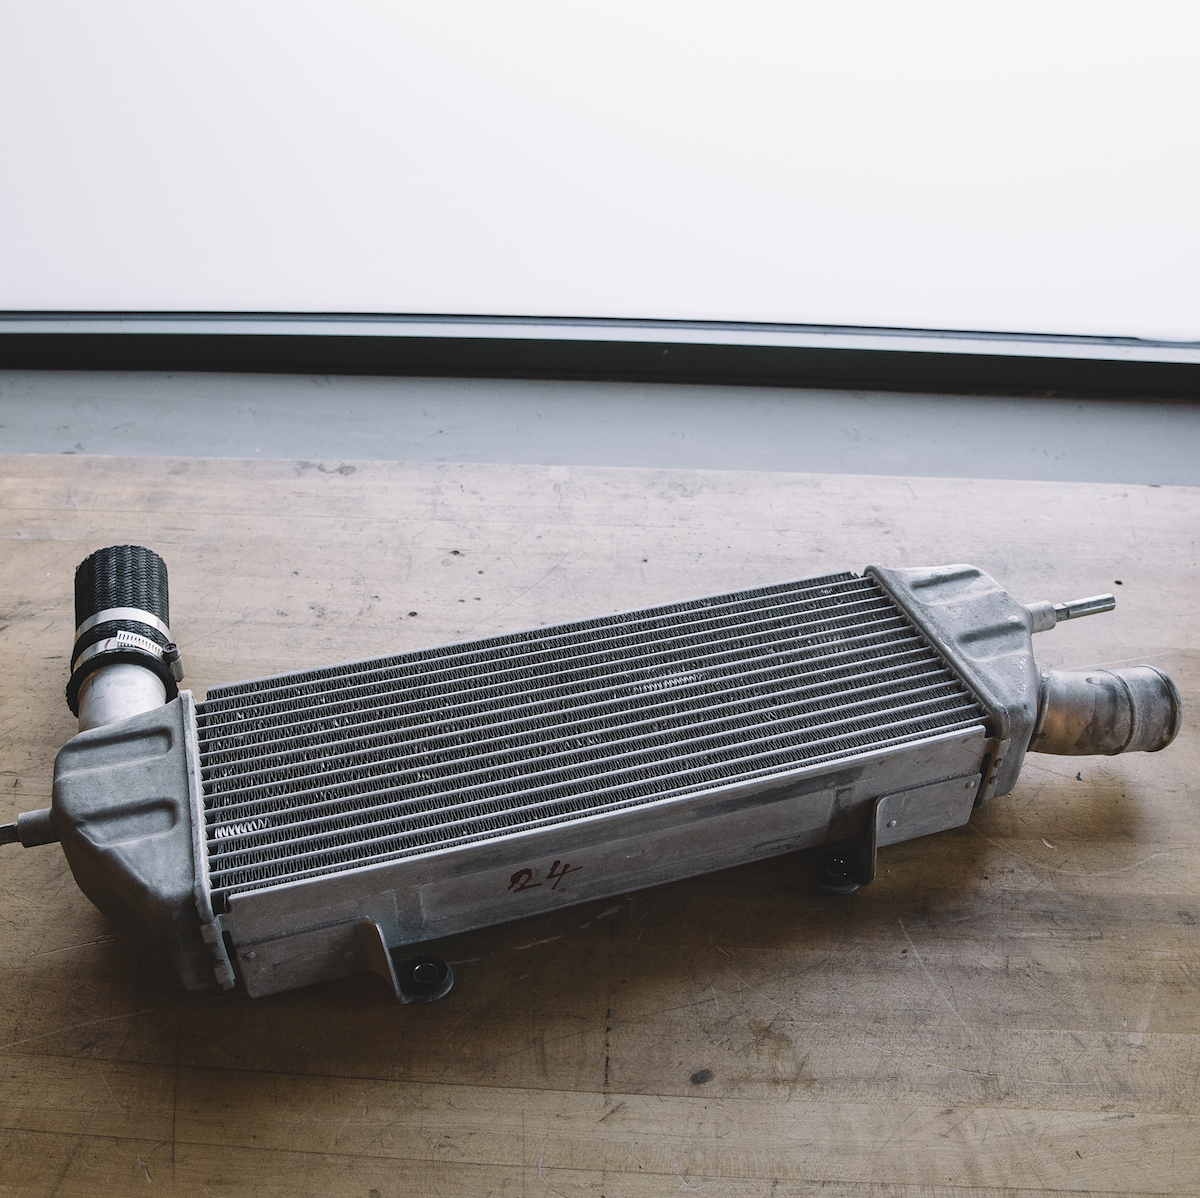 311RS Mitsubishi OEM Lancer Ralliart intercooler